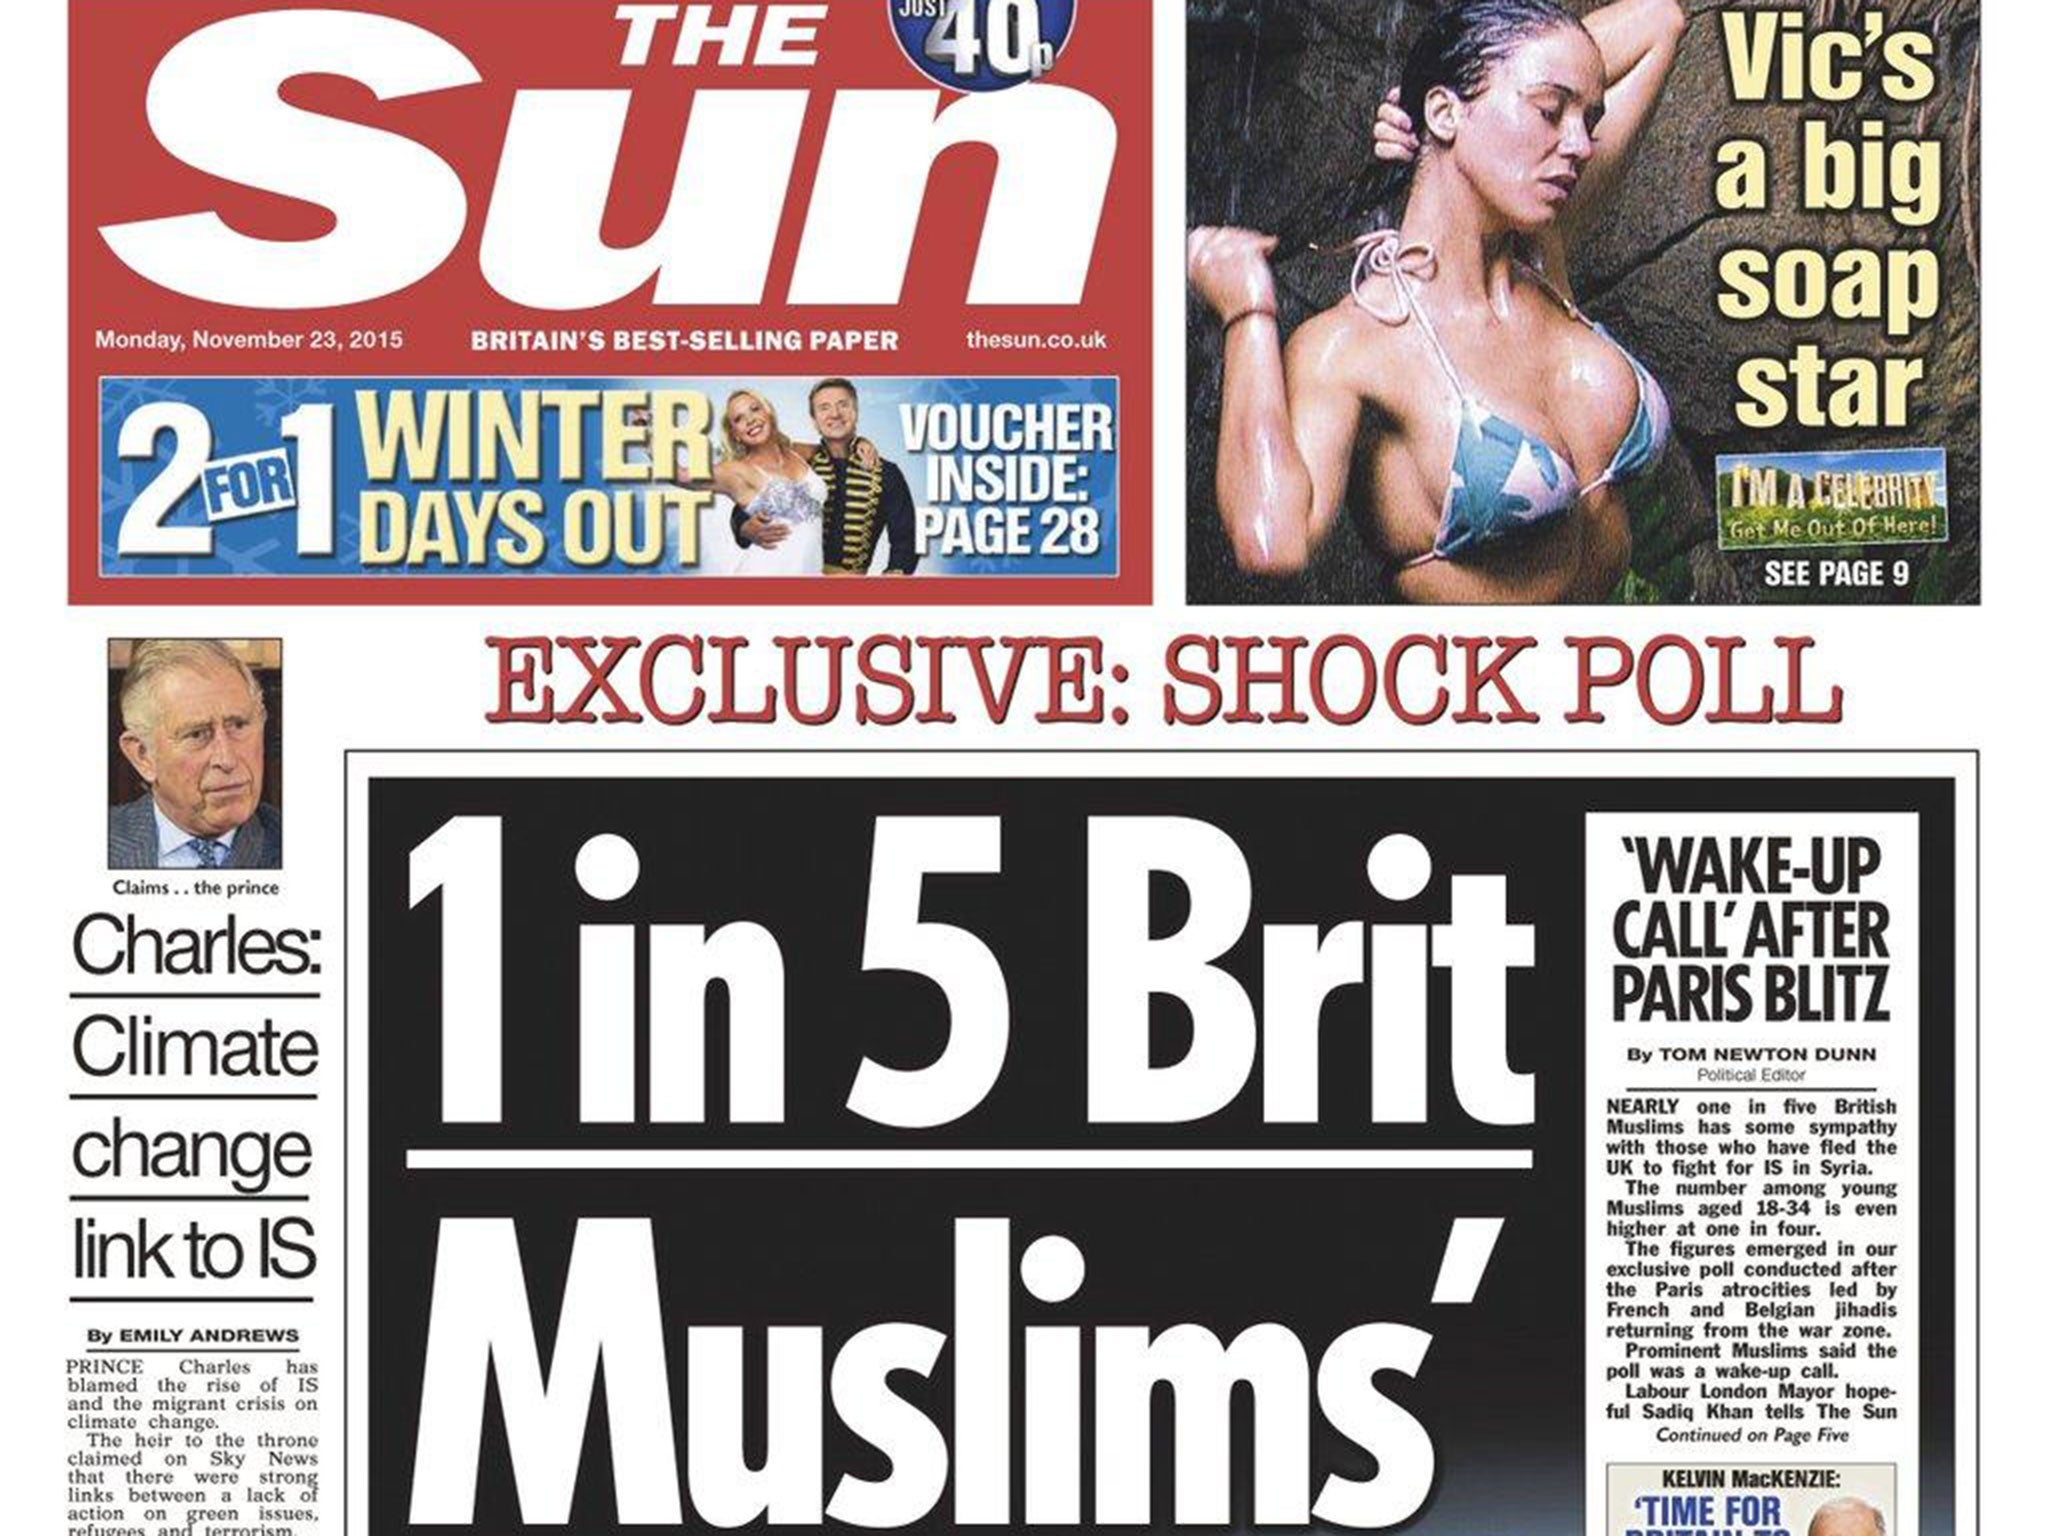 Sun forced to admit '1 in 5 British Muslims' story was ...